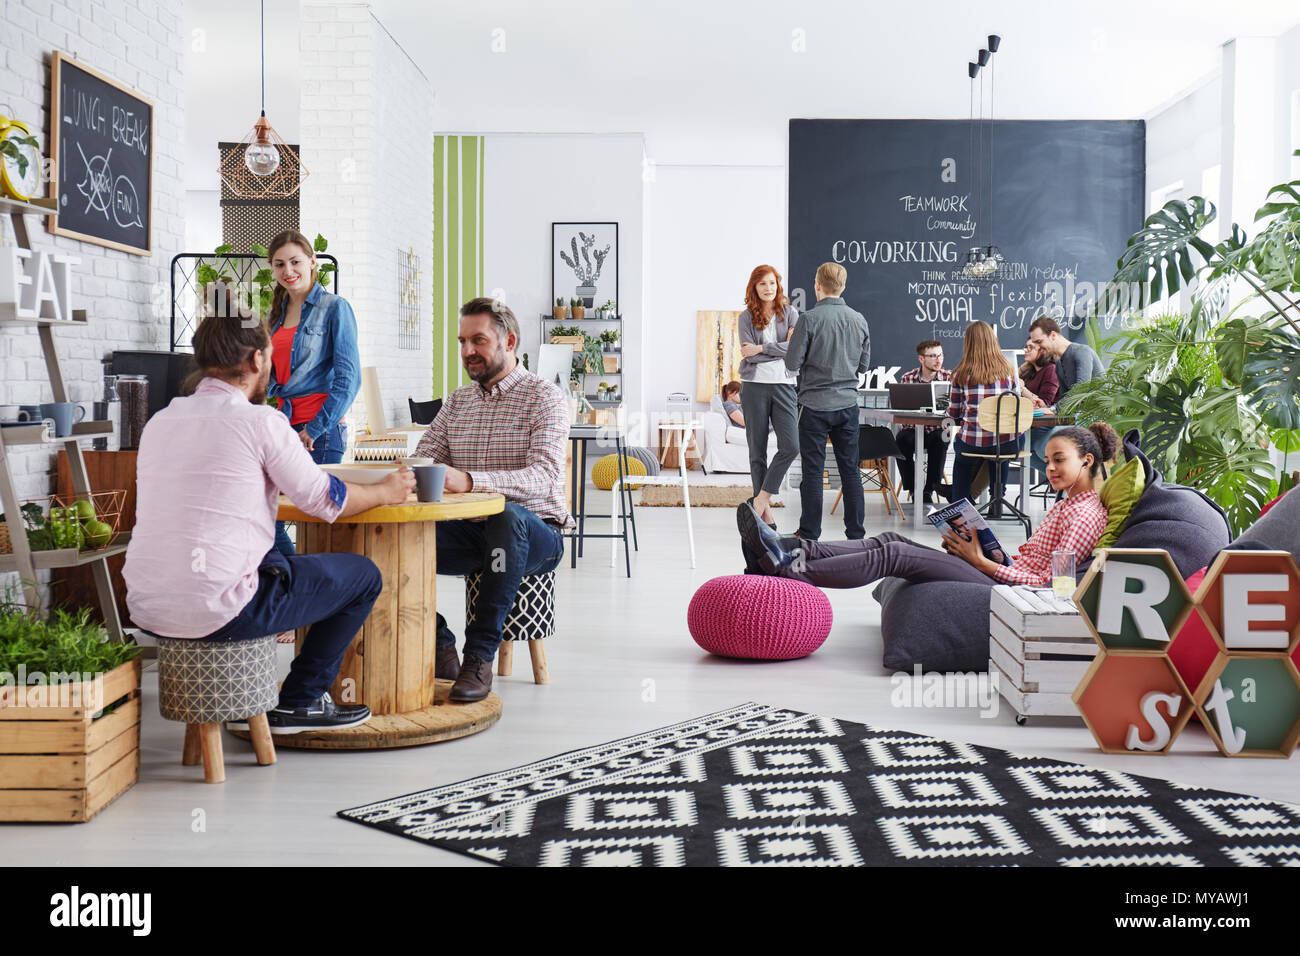 People working in modern agency relaxing during lunch break - Stock Image